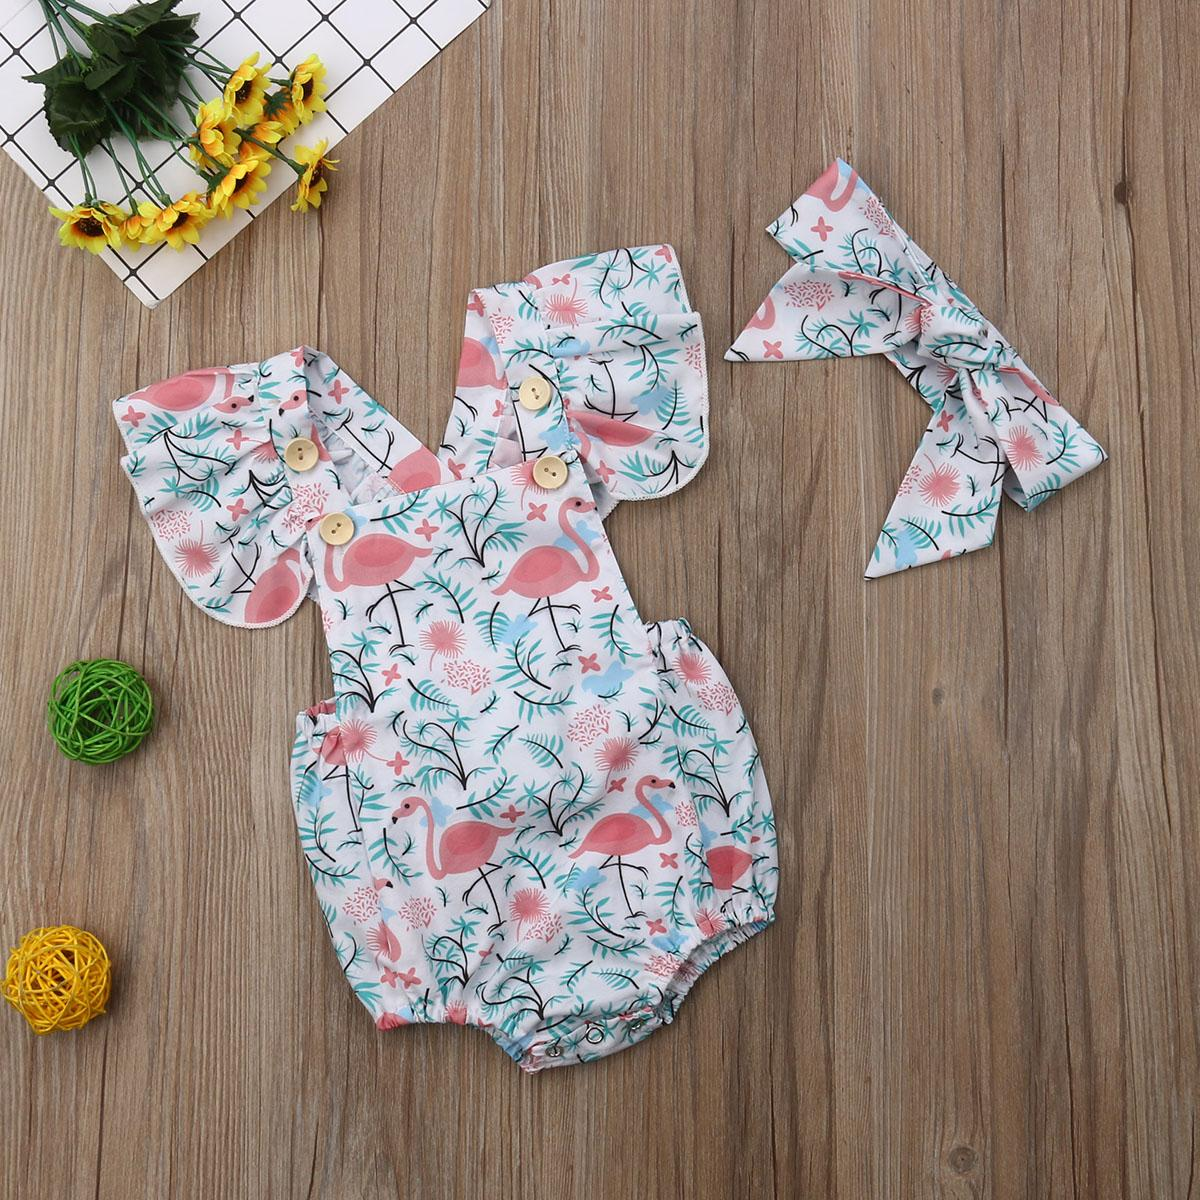 Focusnorm 0-24M New Fashion Newborn Baby Girls Flamingos Romper Cartoon Square Collar Headband Summer Outfits Clothes